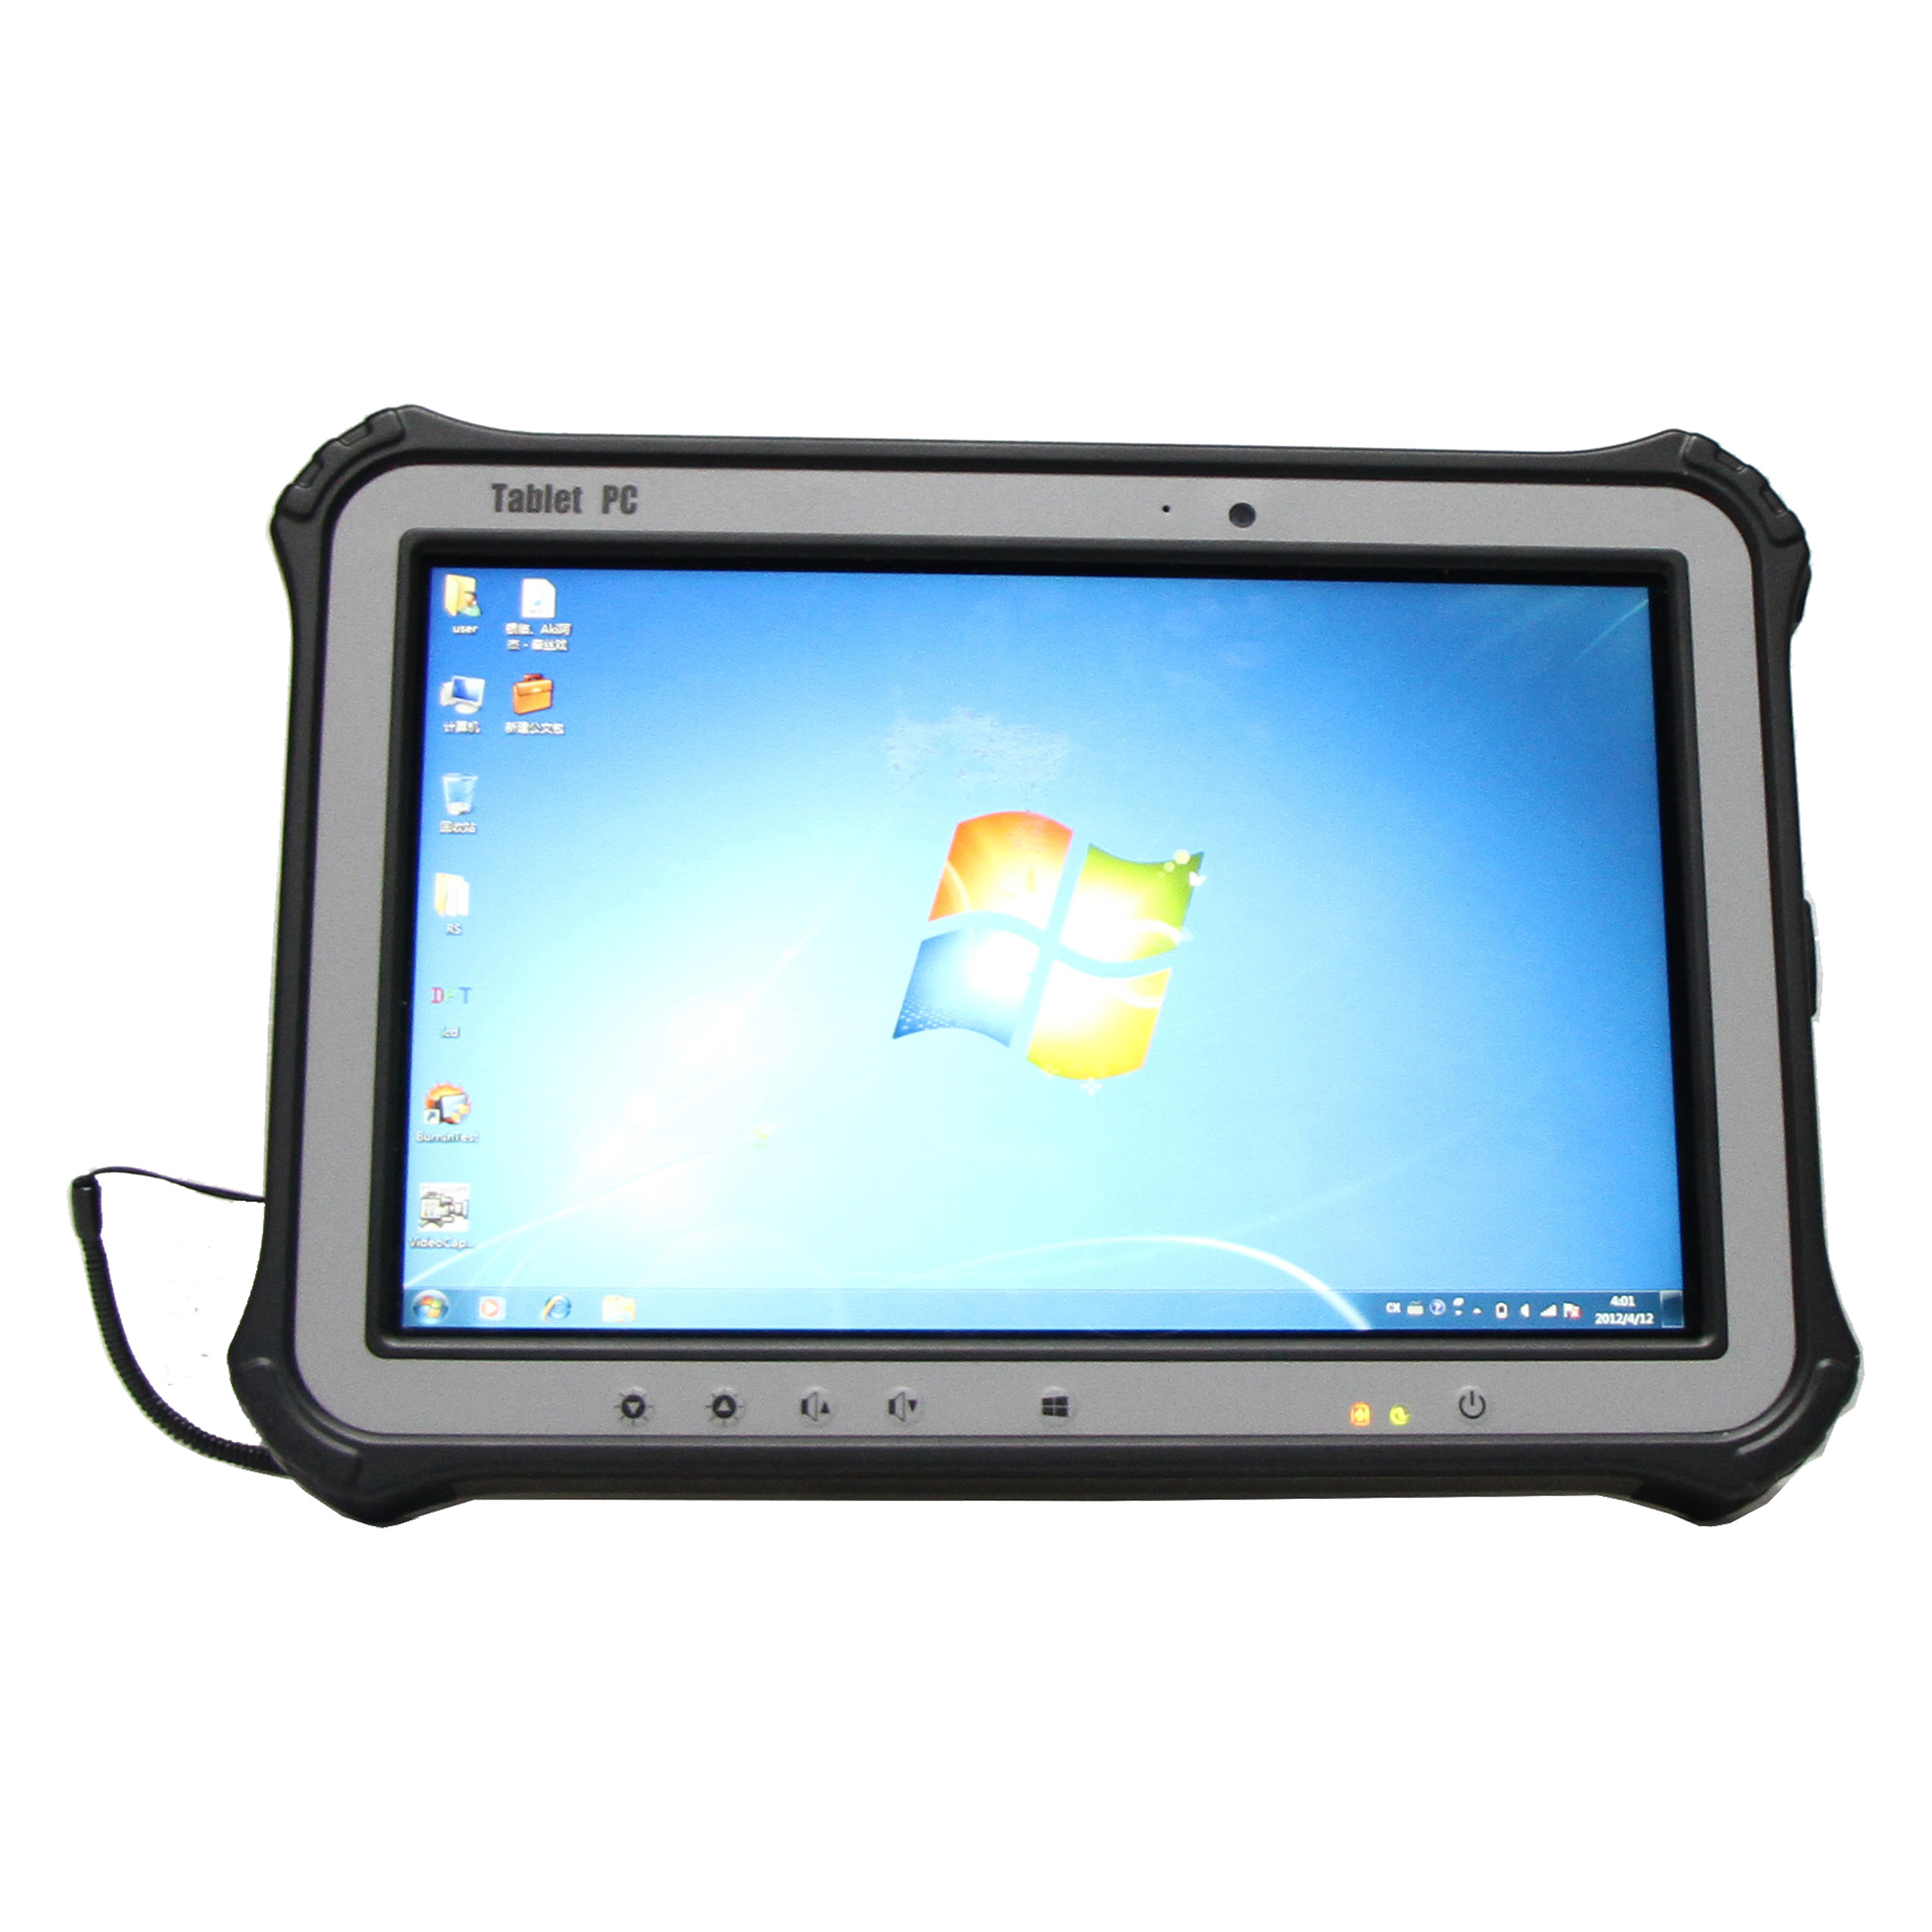 Intel Celeron N2940 Processor For Windows 7 10 Linux Os Inch 4gb 64gb Nfc Rugged Tablet Pc In Low Cost